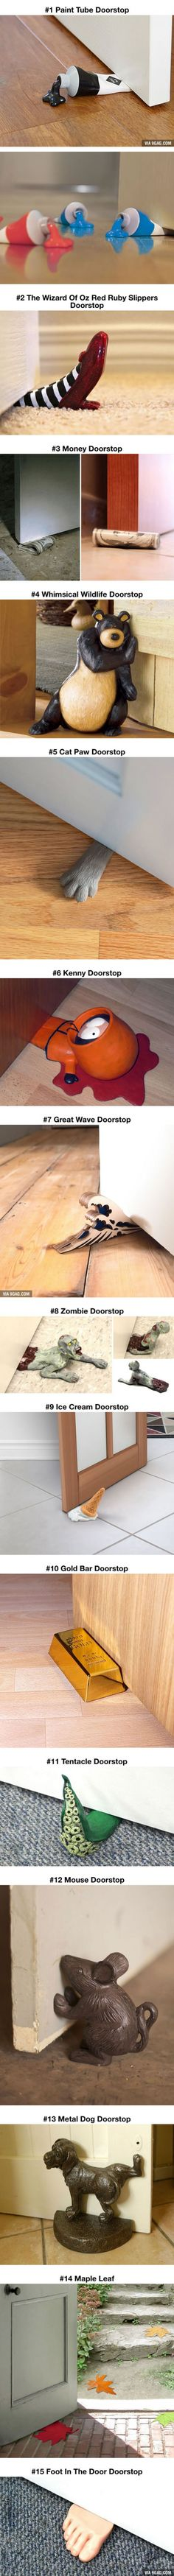 Creativity and DIY: House Ornaments – 15 Fun Doorstops. You've Never Wanted A Doorstop This Much! Cool Inventions, Door Stop, Cool Stuff, Random Stuff, Things To Buy, Nerdy Things, Future House, Life Hacks, Home Improvement